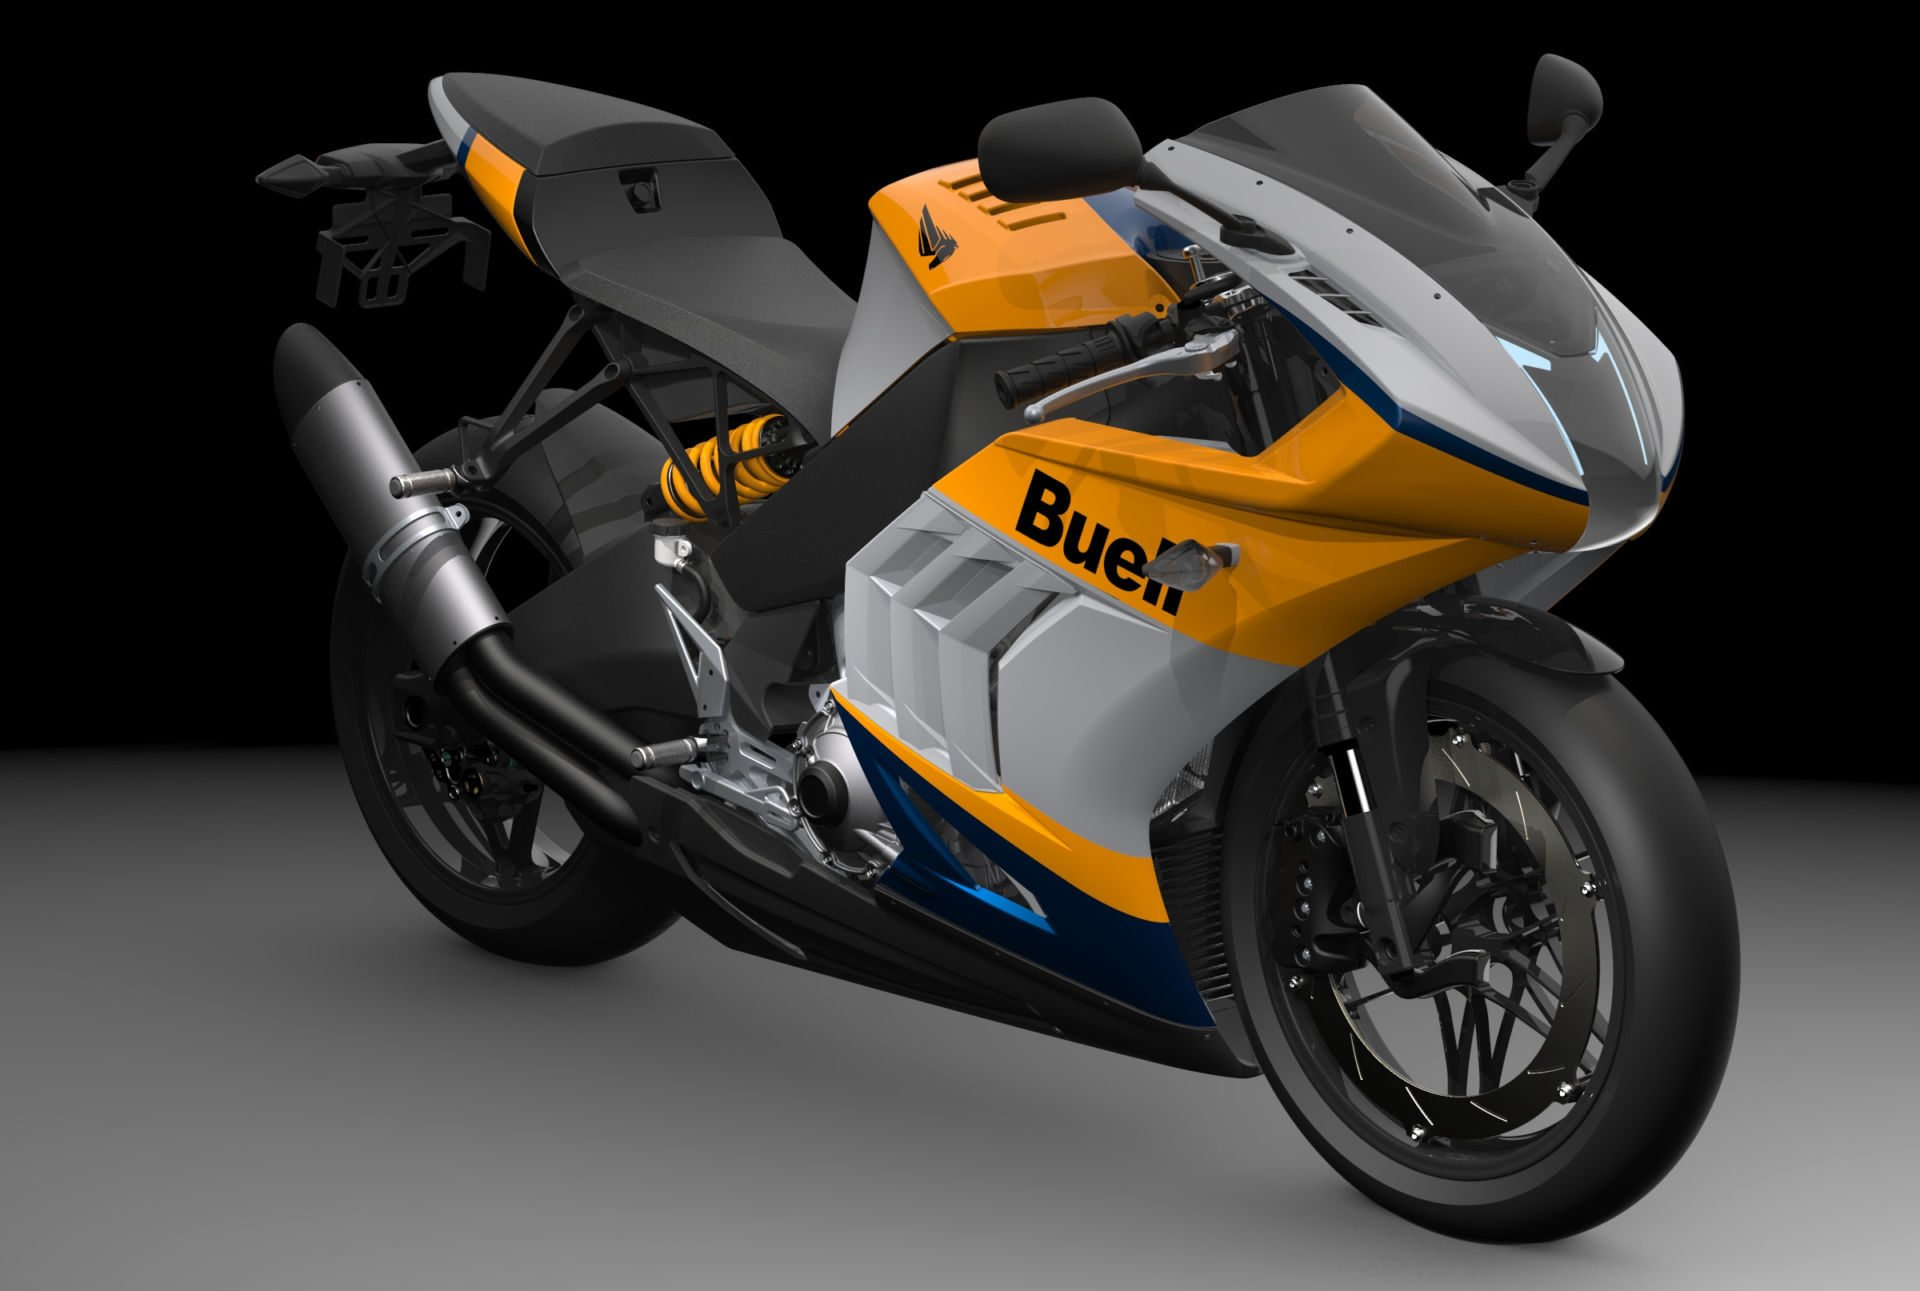 A 2021 Buell Hammerhead 1190RX. Image courtesy Buell Motorcycle.